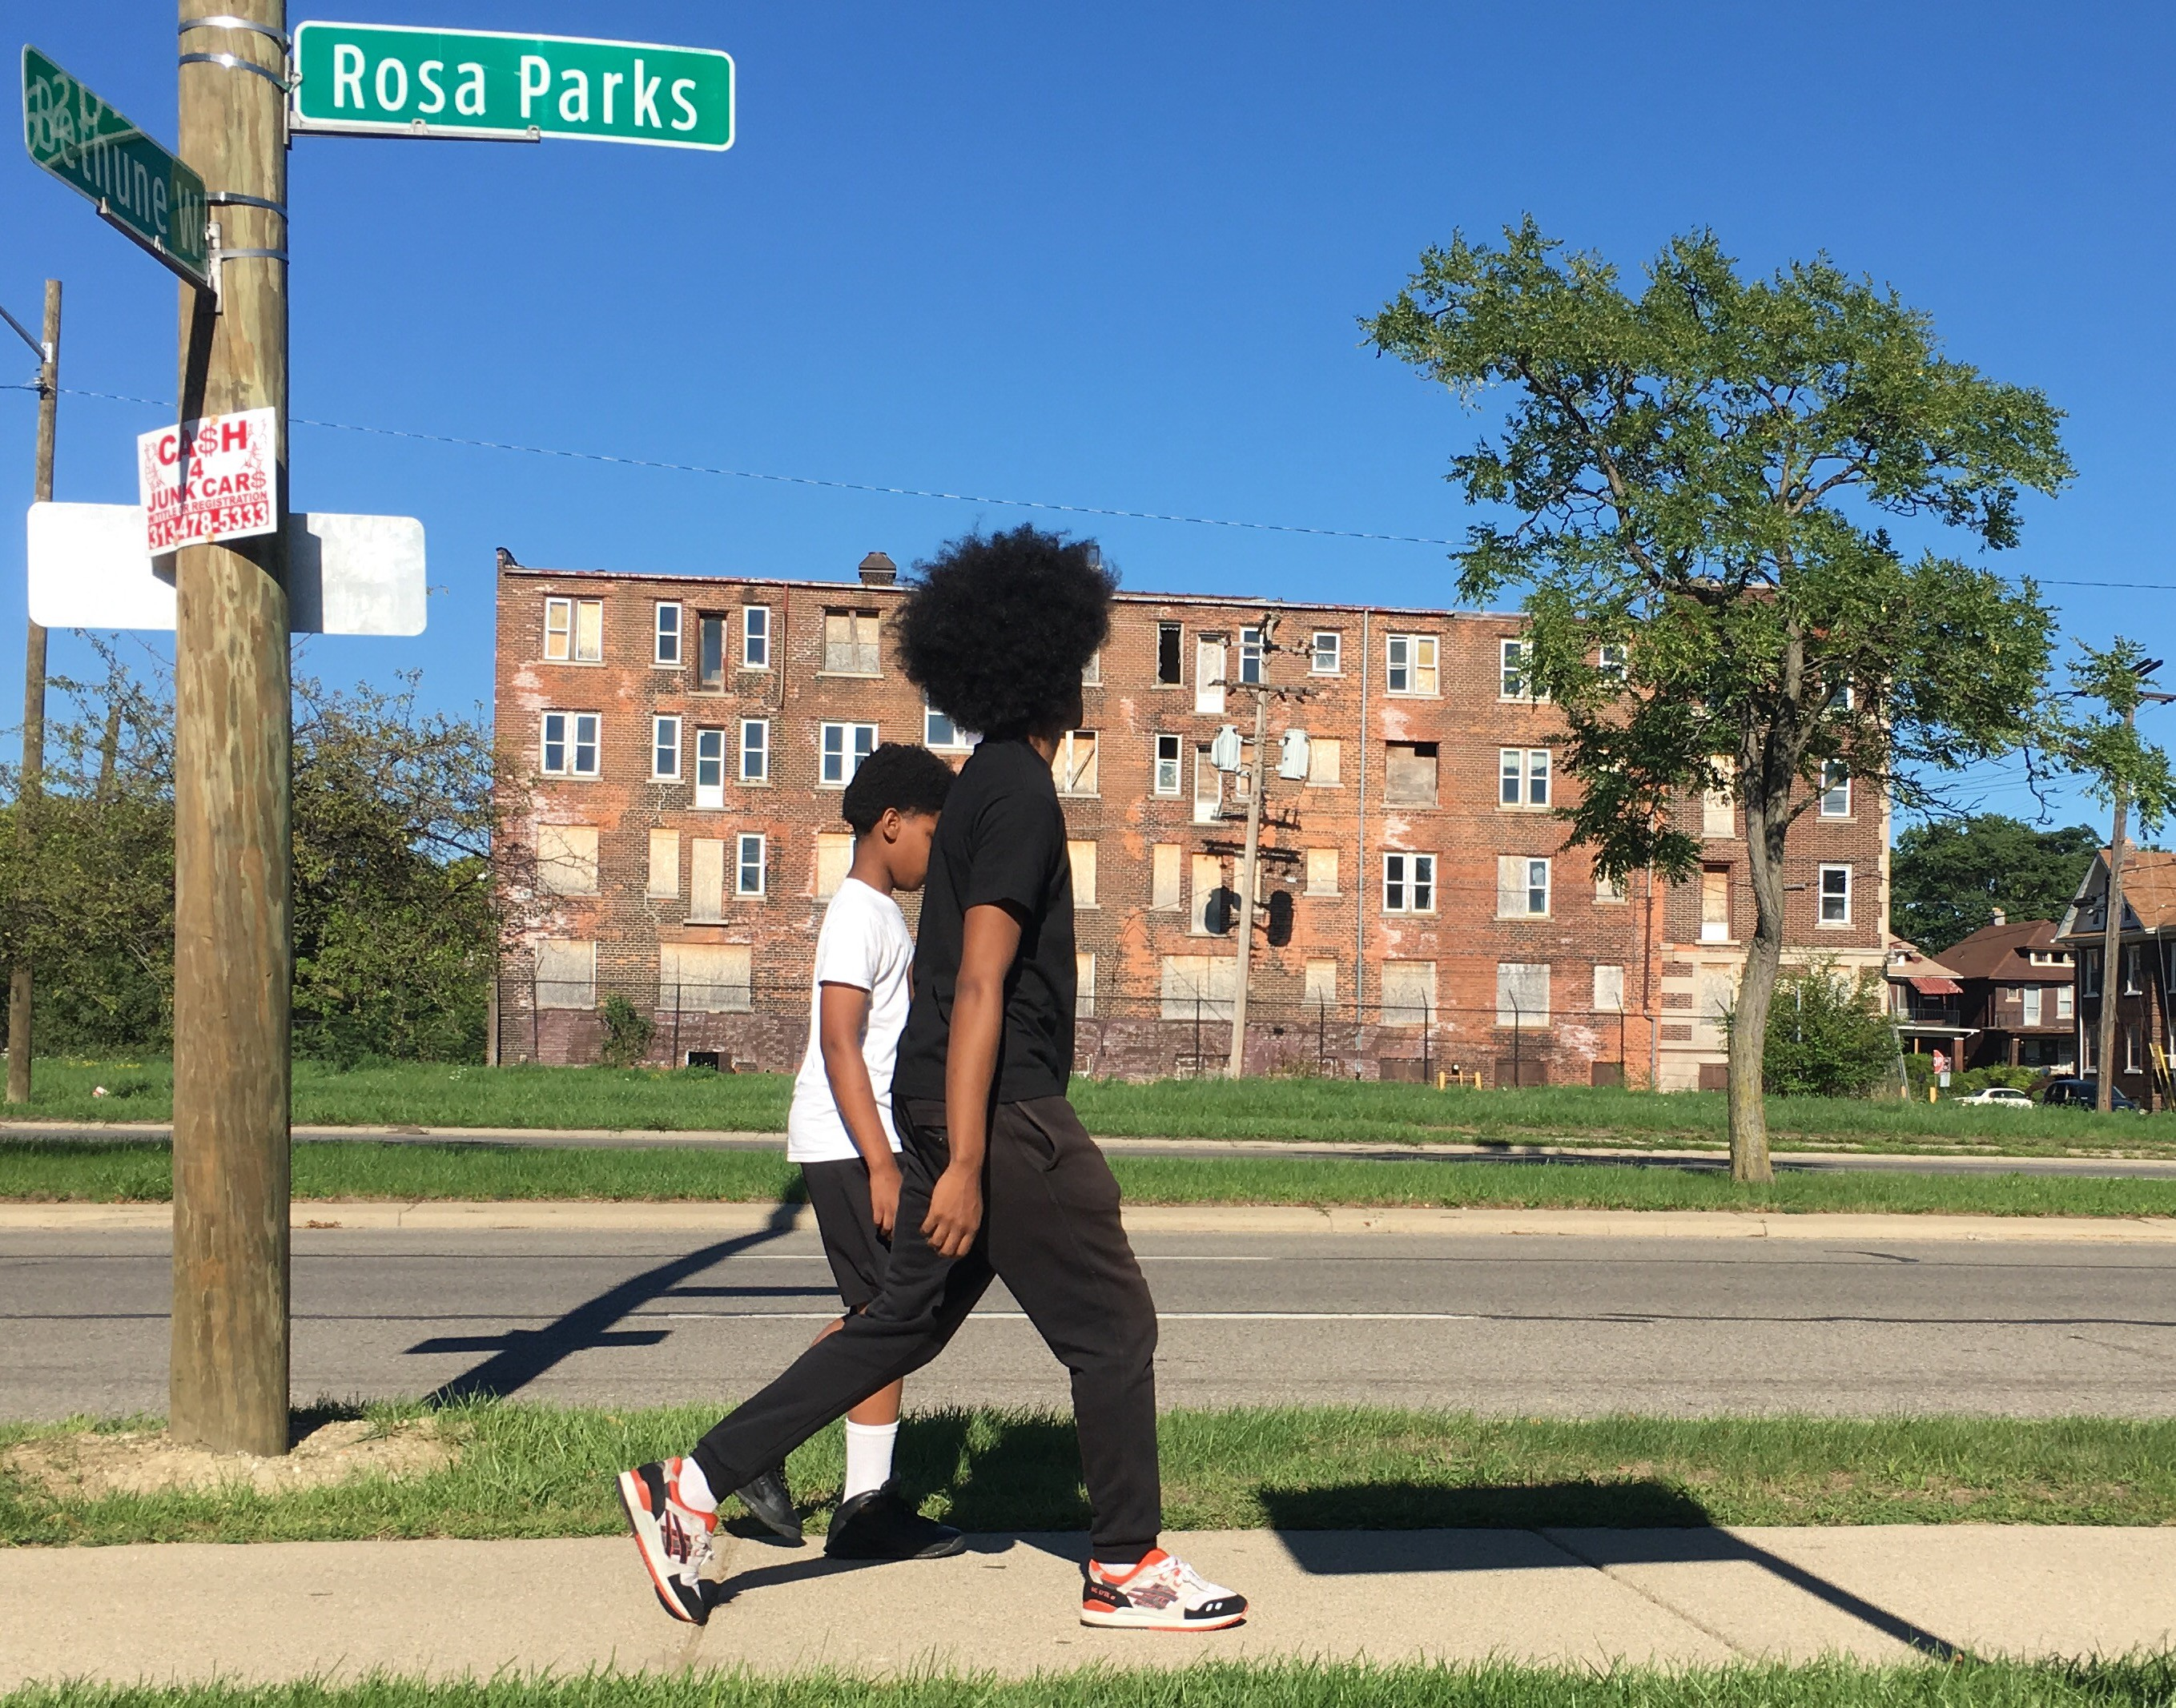 A photo of two Black youths walking down a street in Detroit.